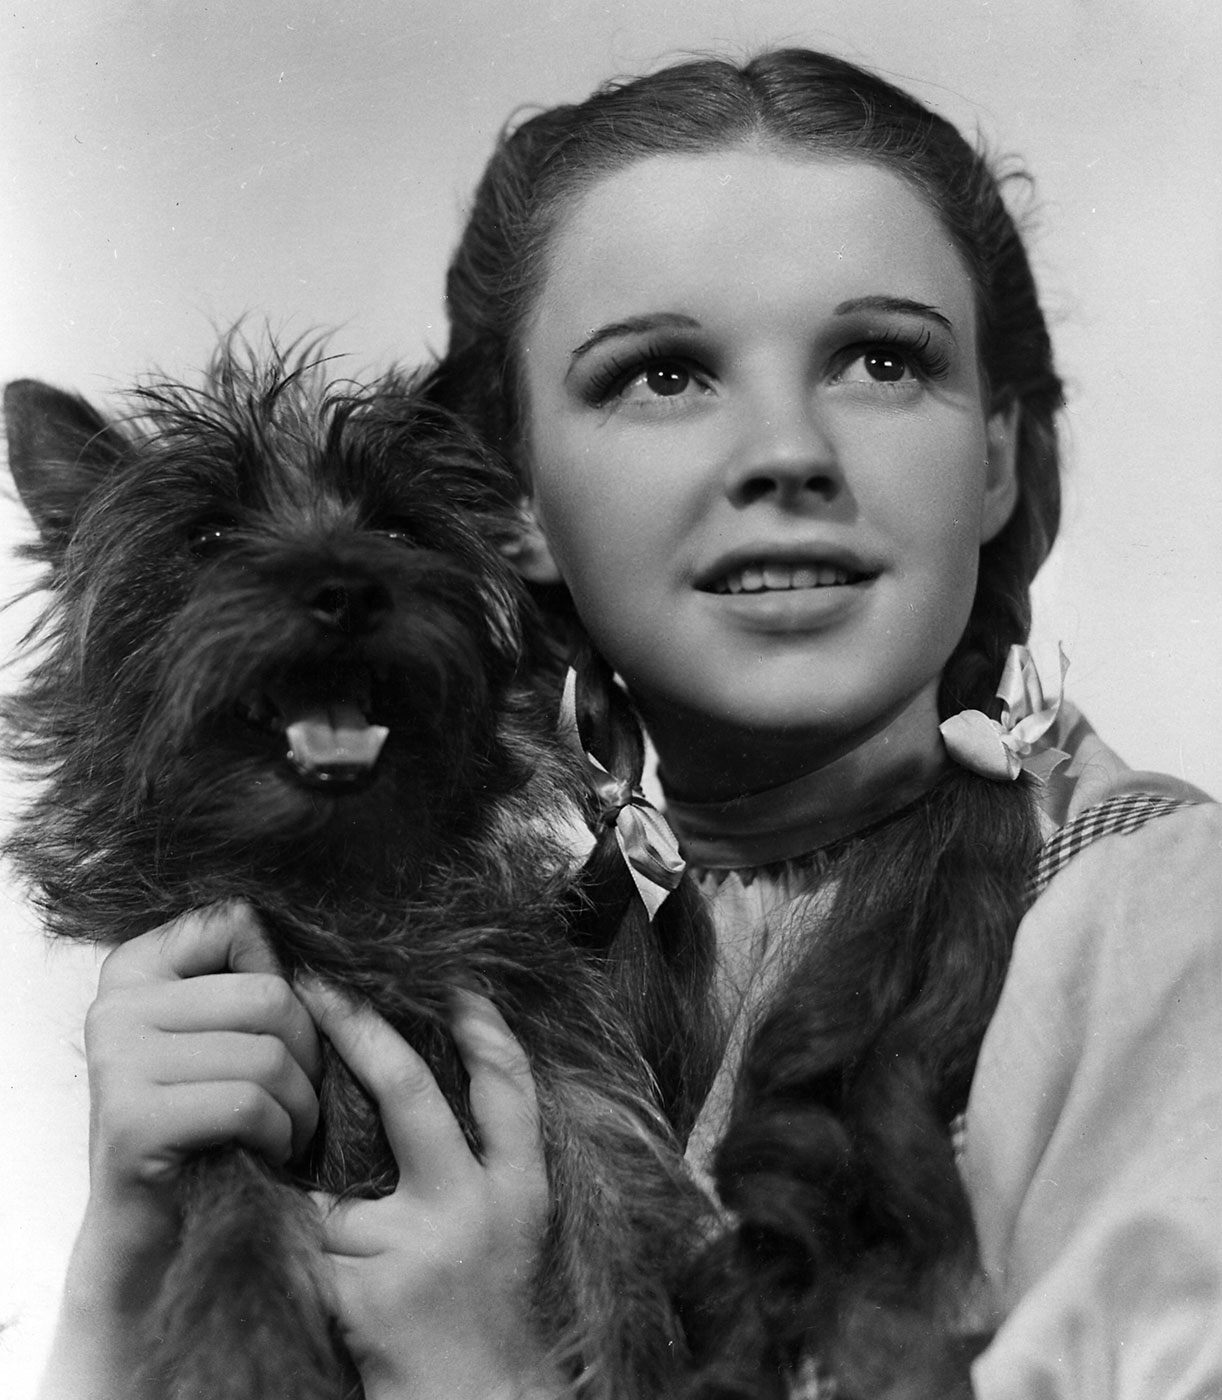 Judy Garland's and her canine costar - Terry